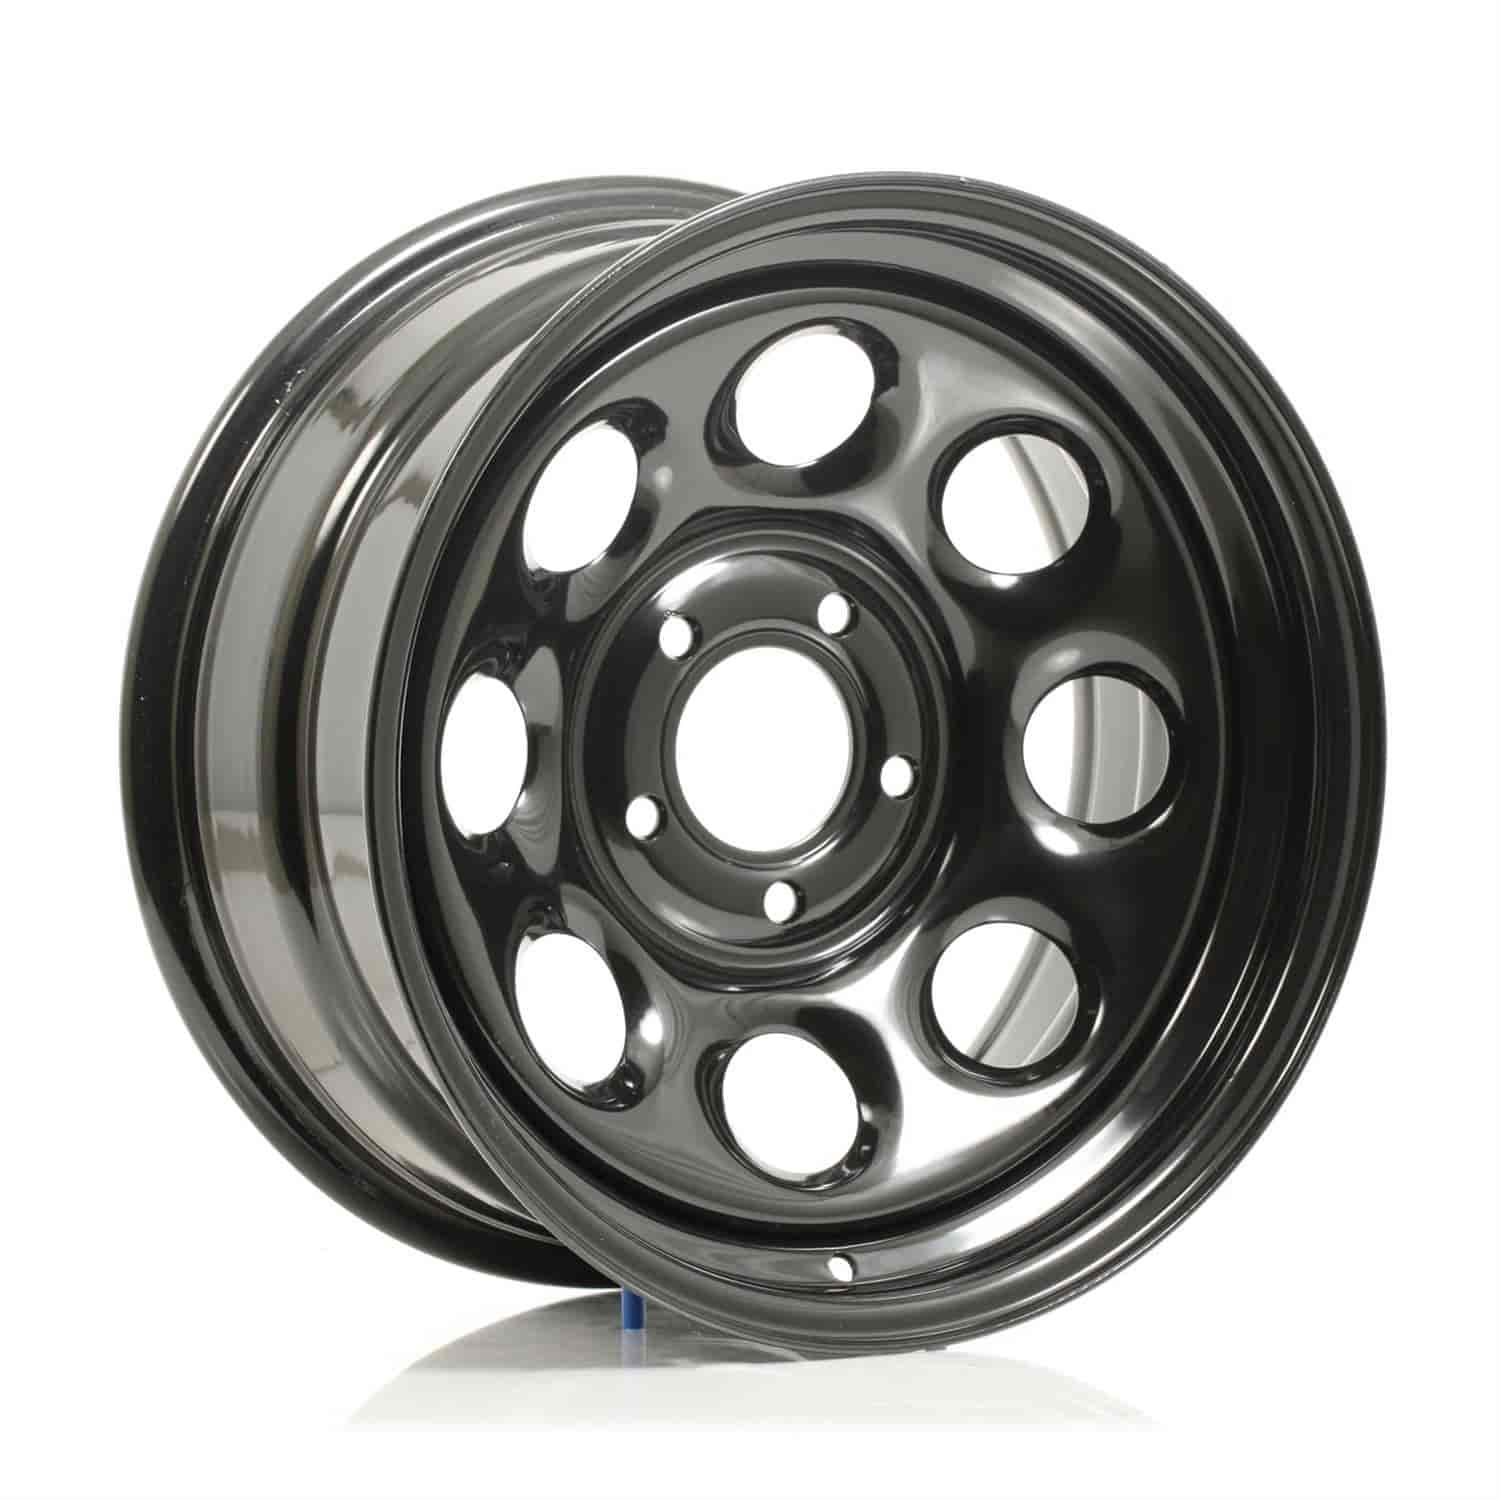 Cragar 3978855 - Cragar Black Soft 8 Wheels